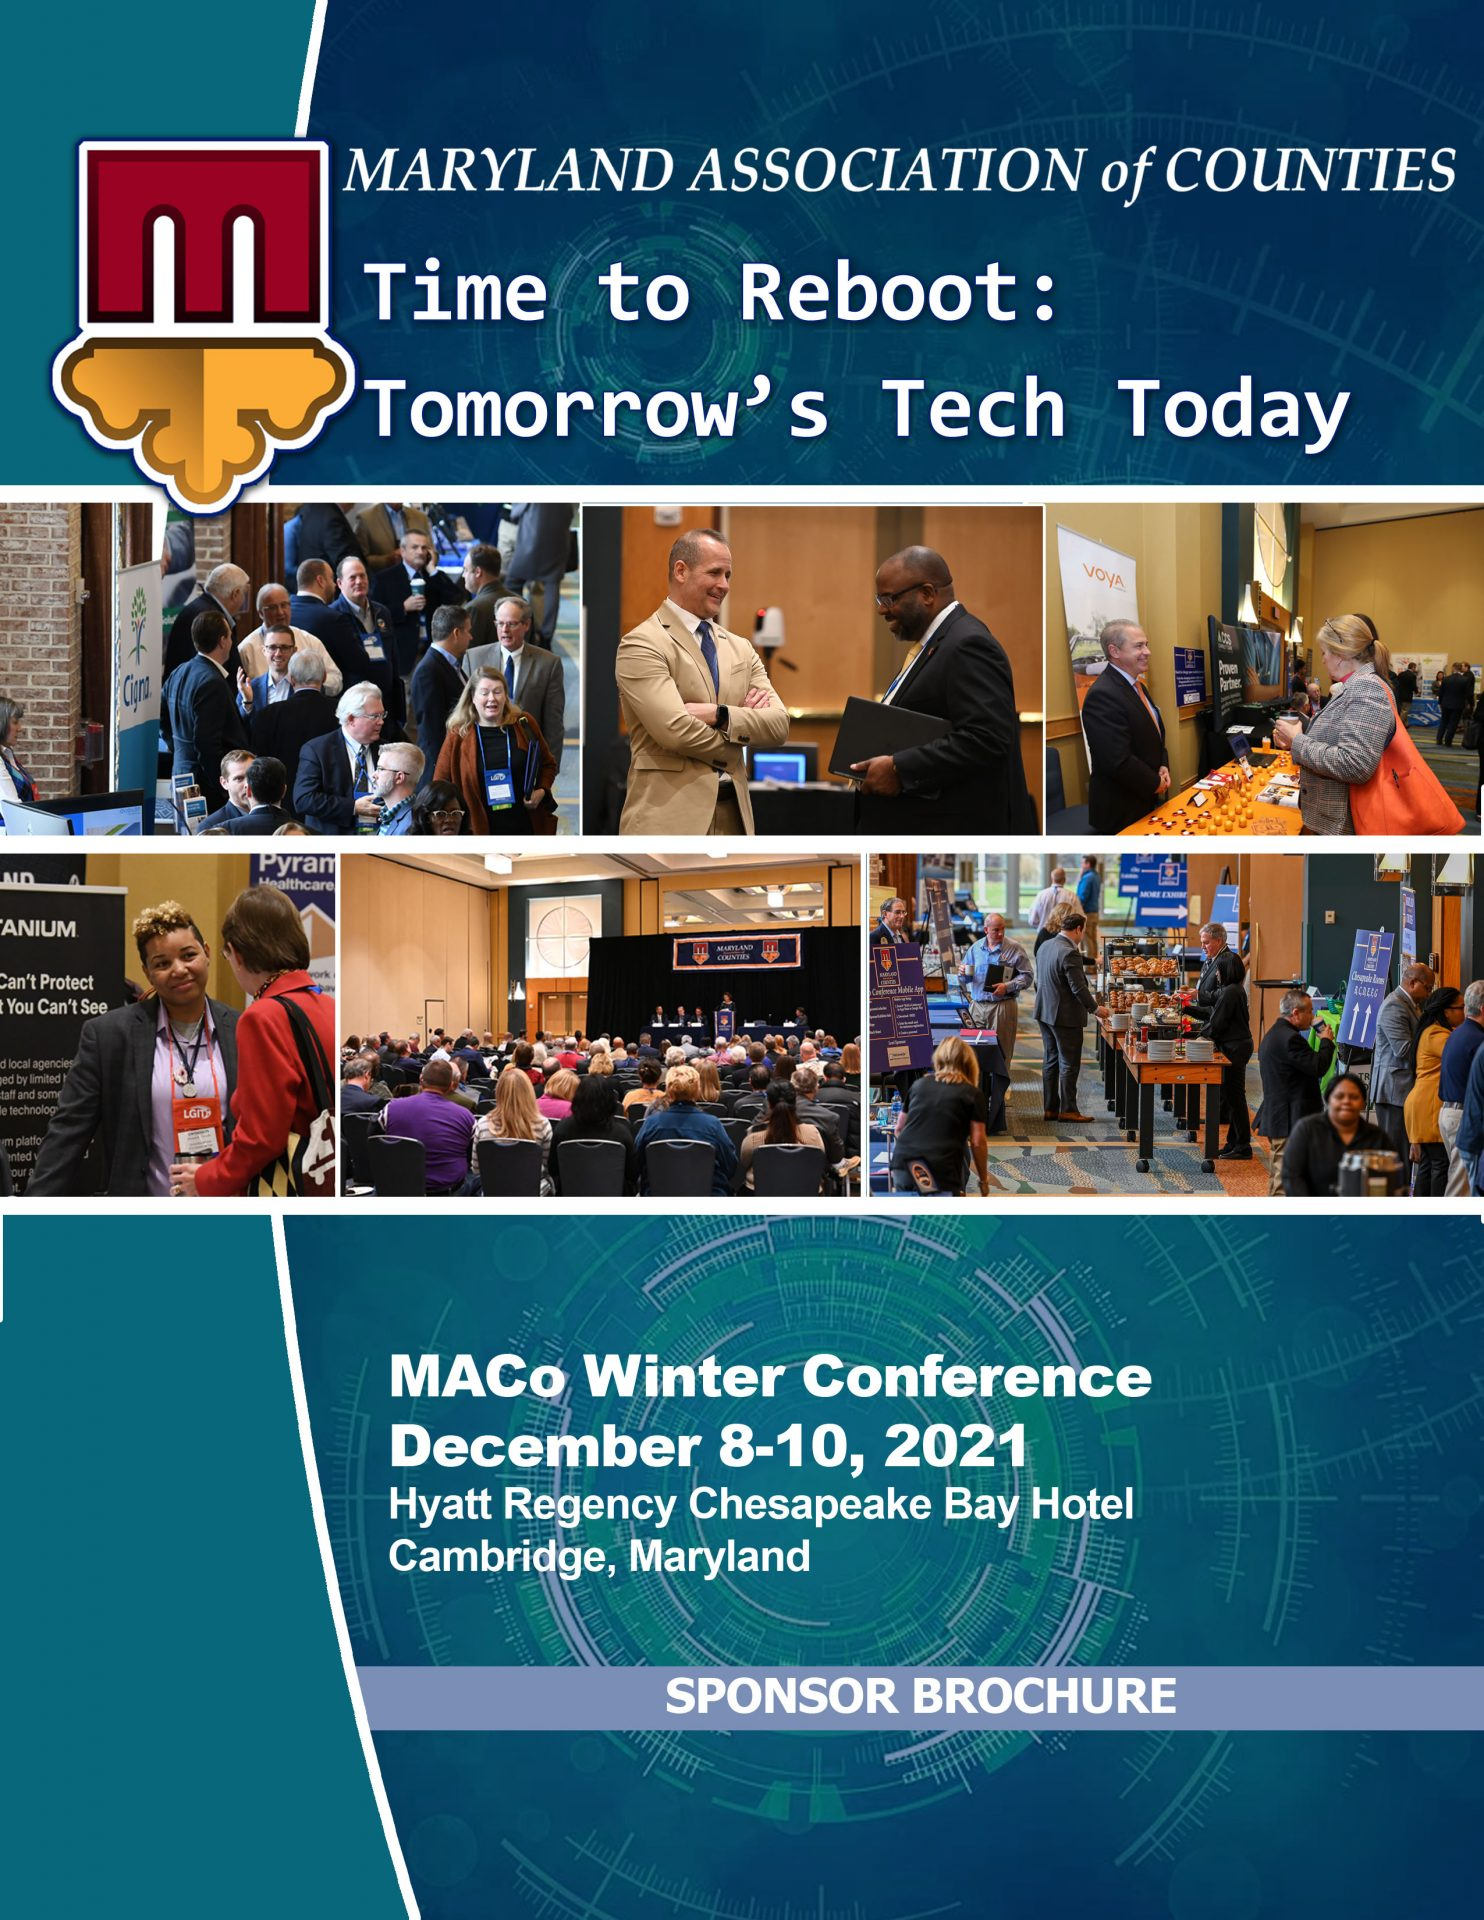 Looking to Connect with Counties? Sponsor Winter #MACoCon